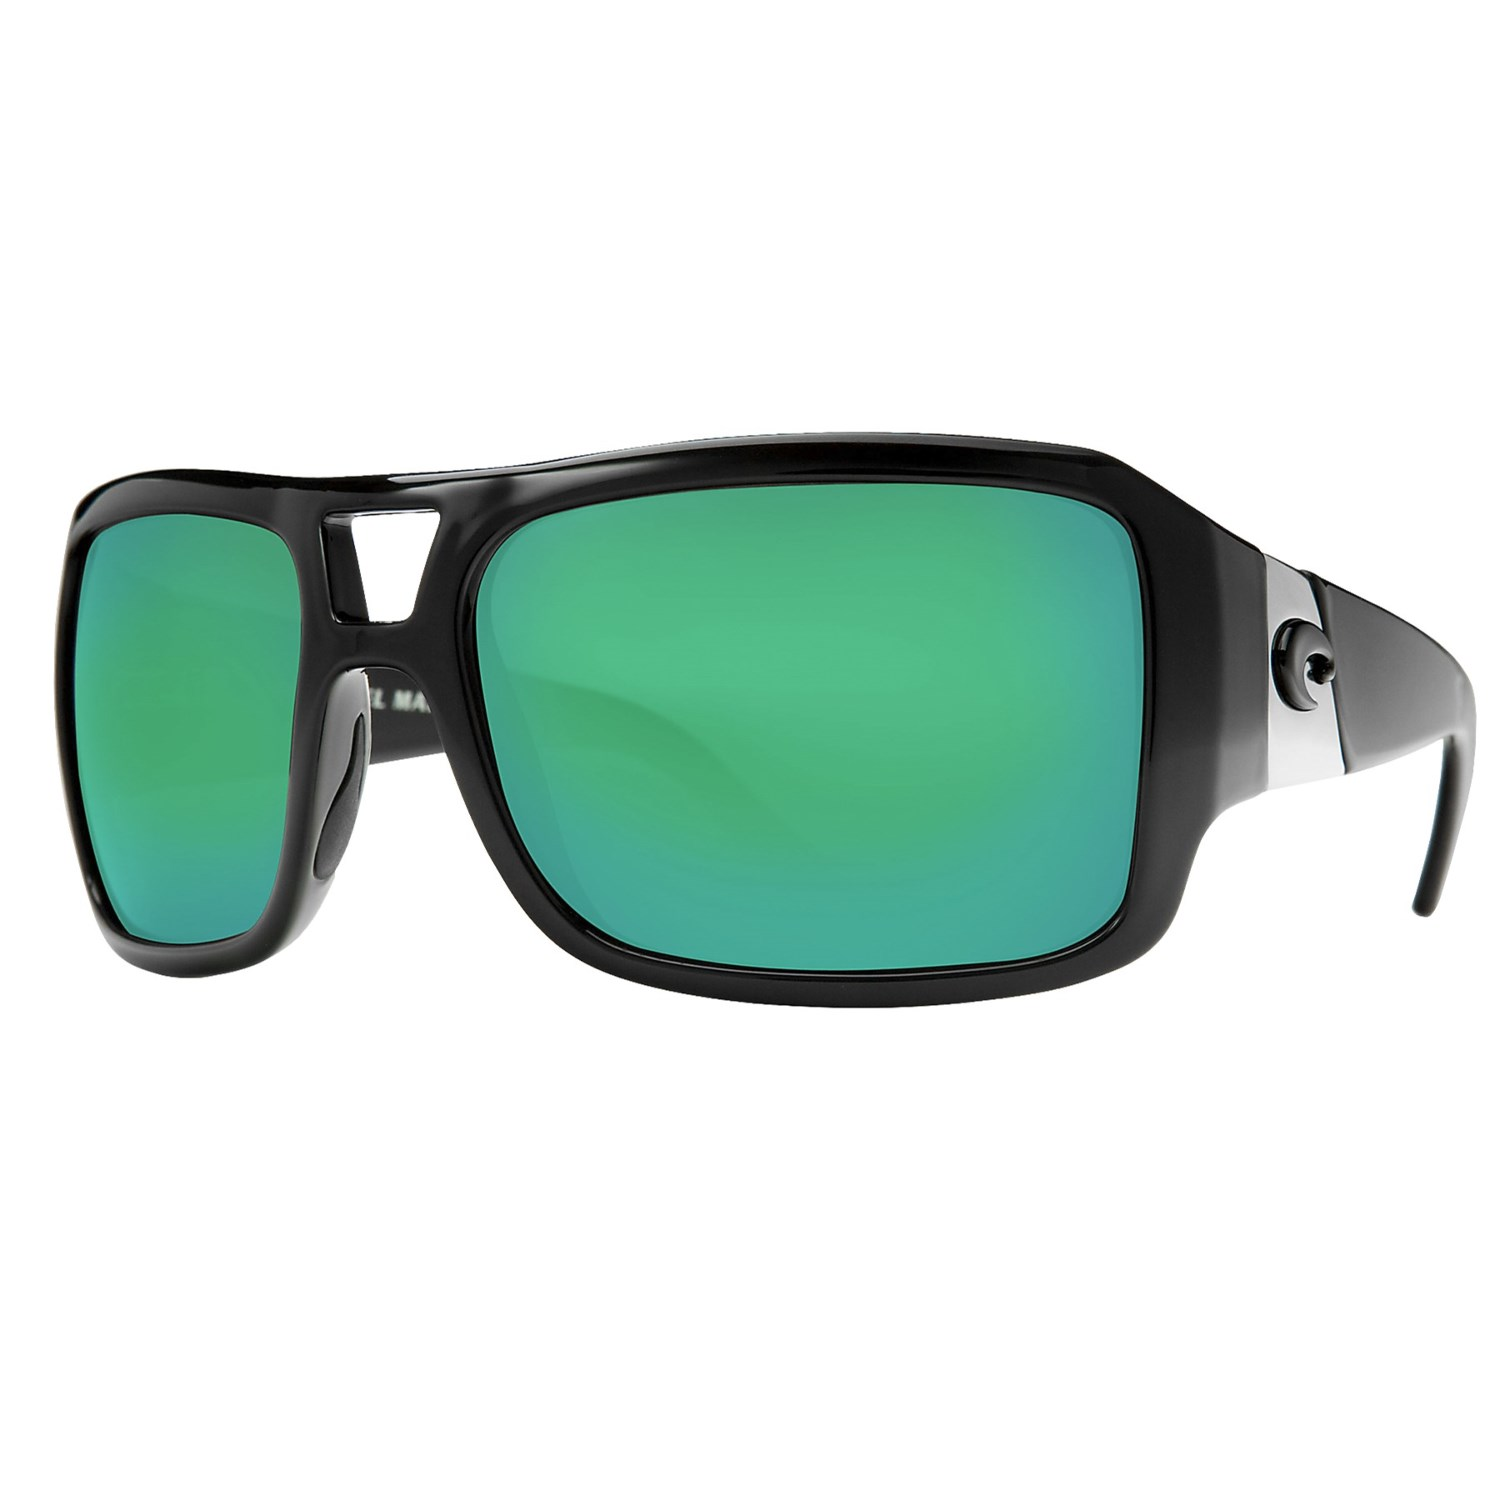 d5441b5f58a Costa Del Mar Men s Luke 400g Polarized Sunglasses - Bitterroot ...